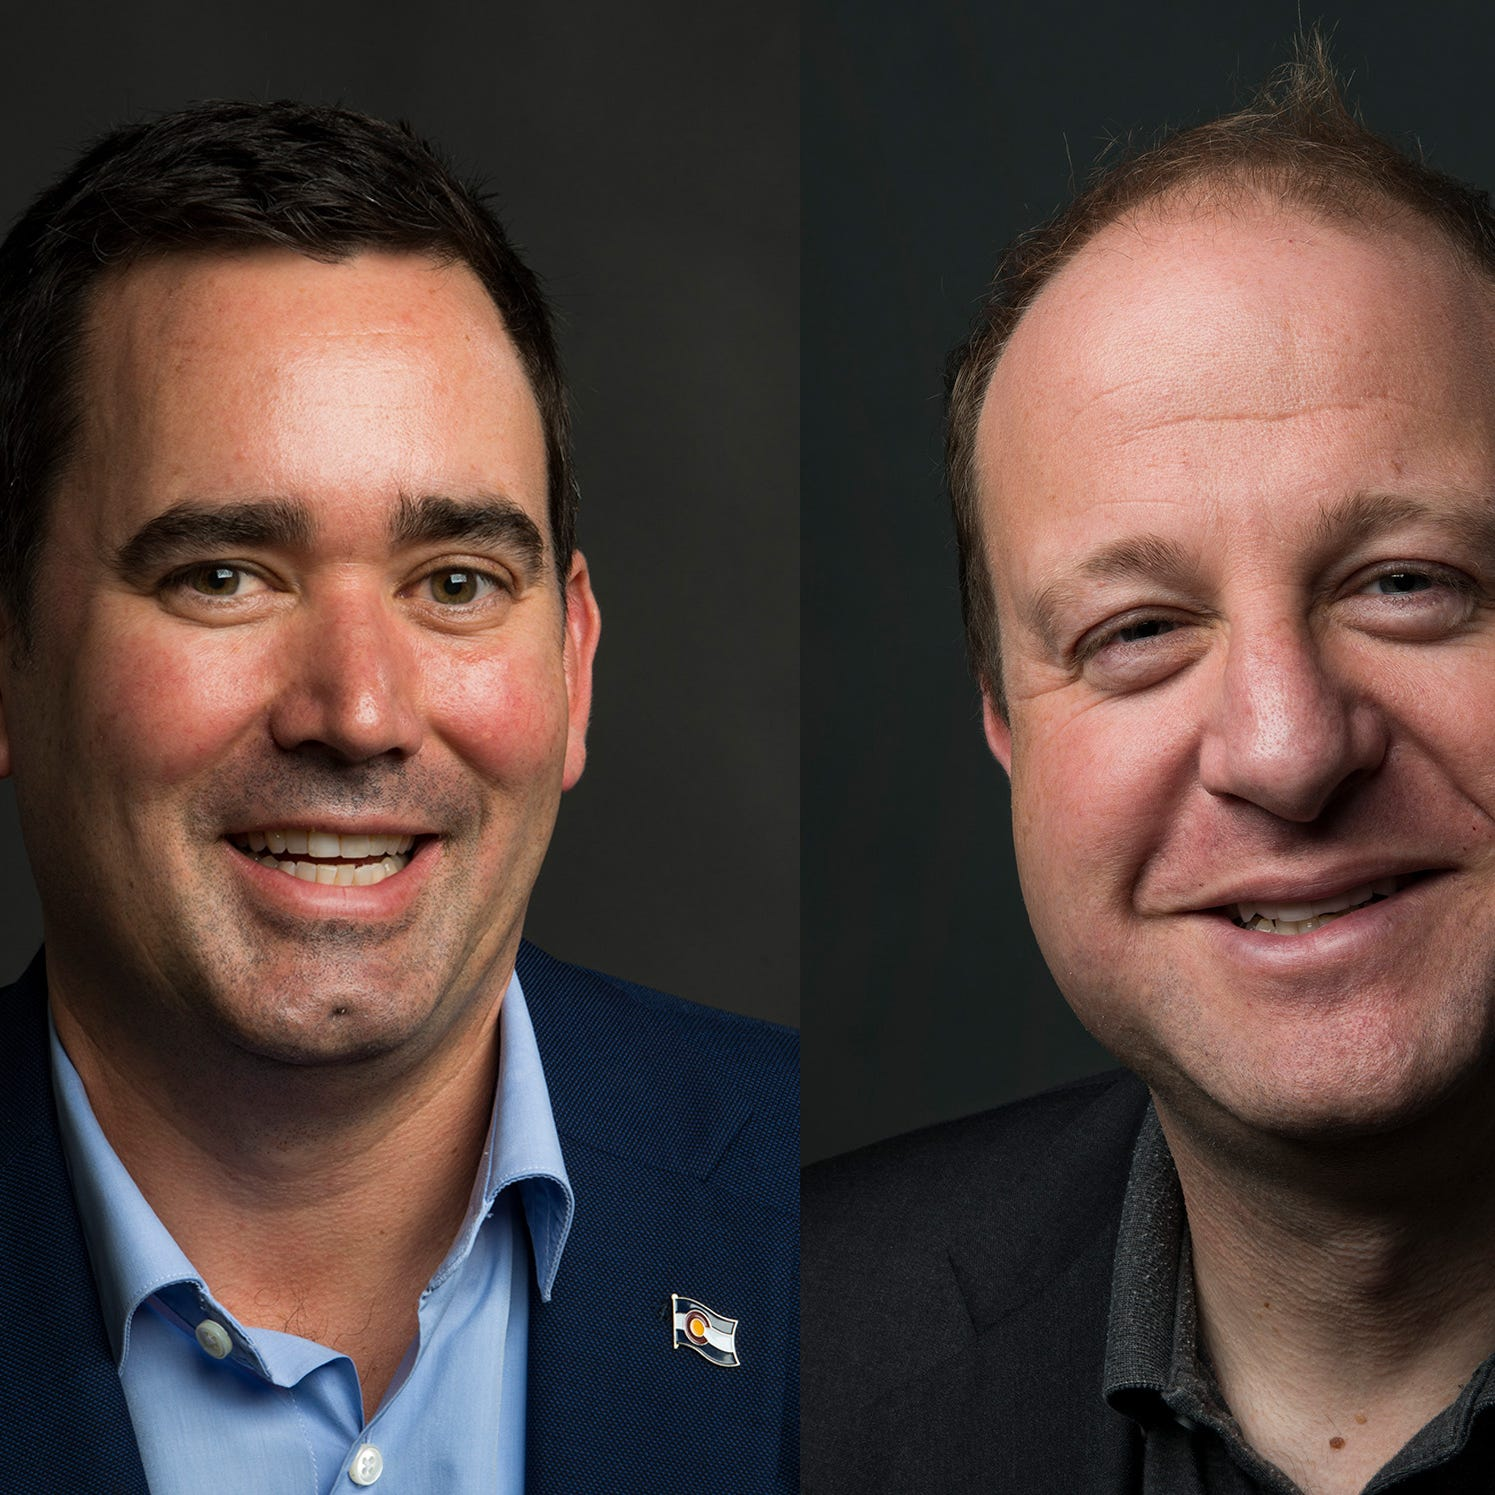 Watch live: Colorado governor candidates Walker Stapleton, Jared Polis debate in Fort Collins